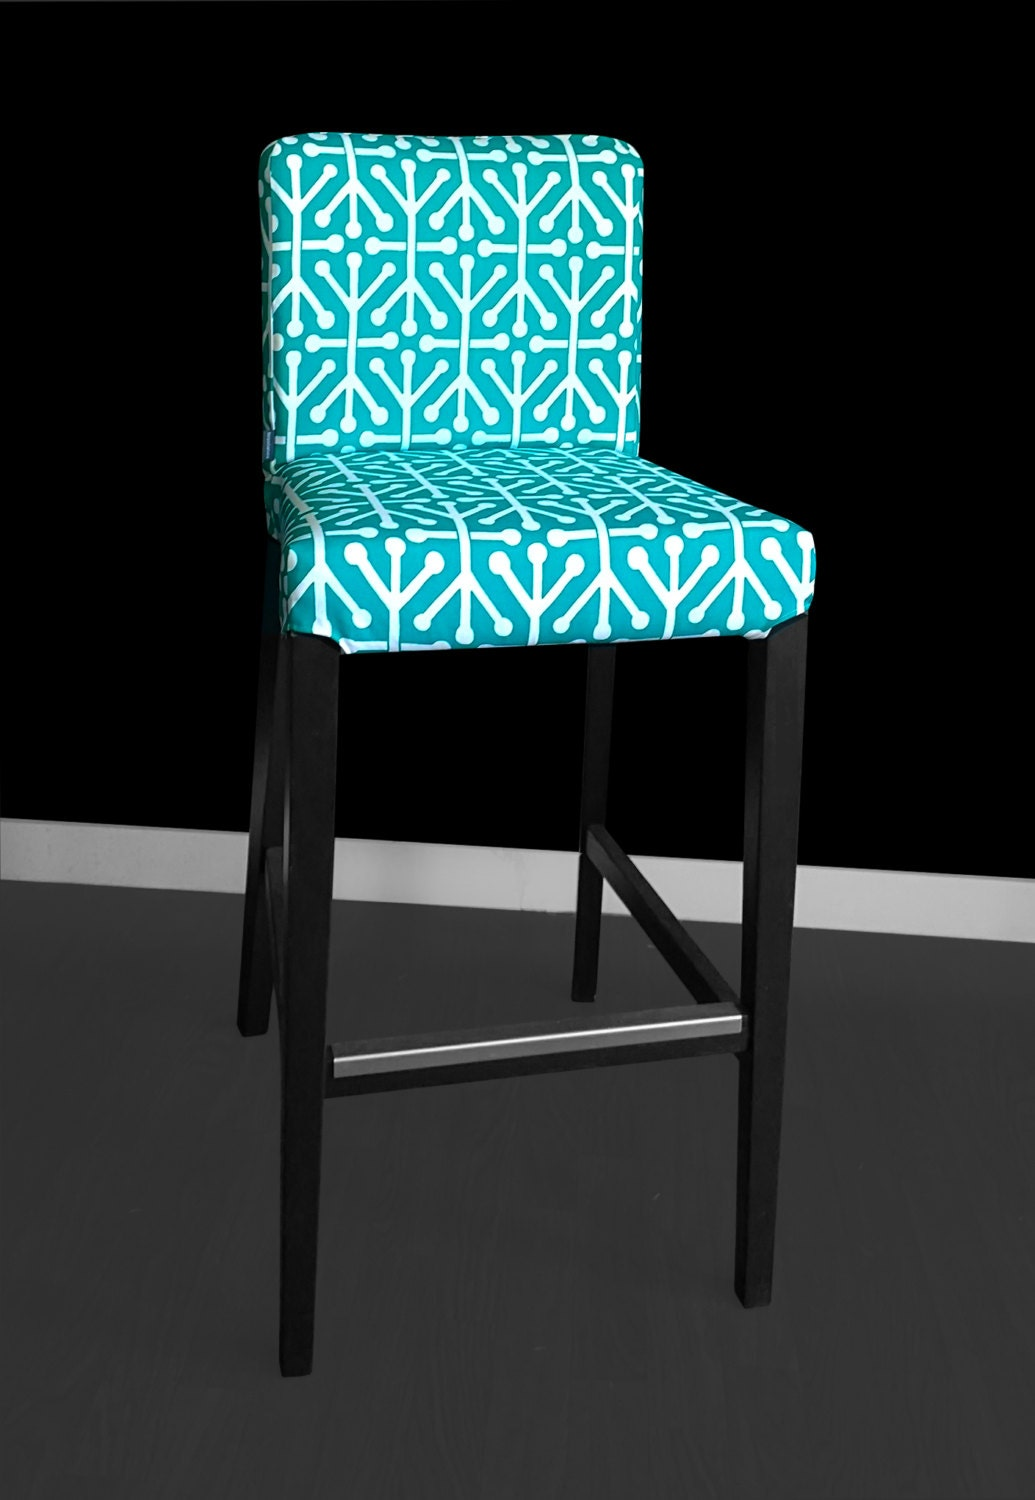 housse de chaise turquoise ikea henriksdal tabouret. Black Bedroom Furniture Sets. Home Design Ideas